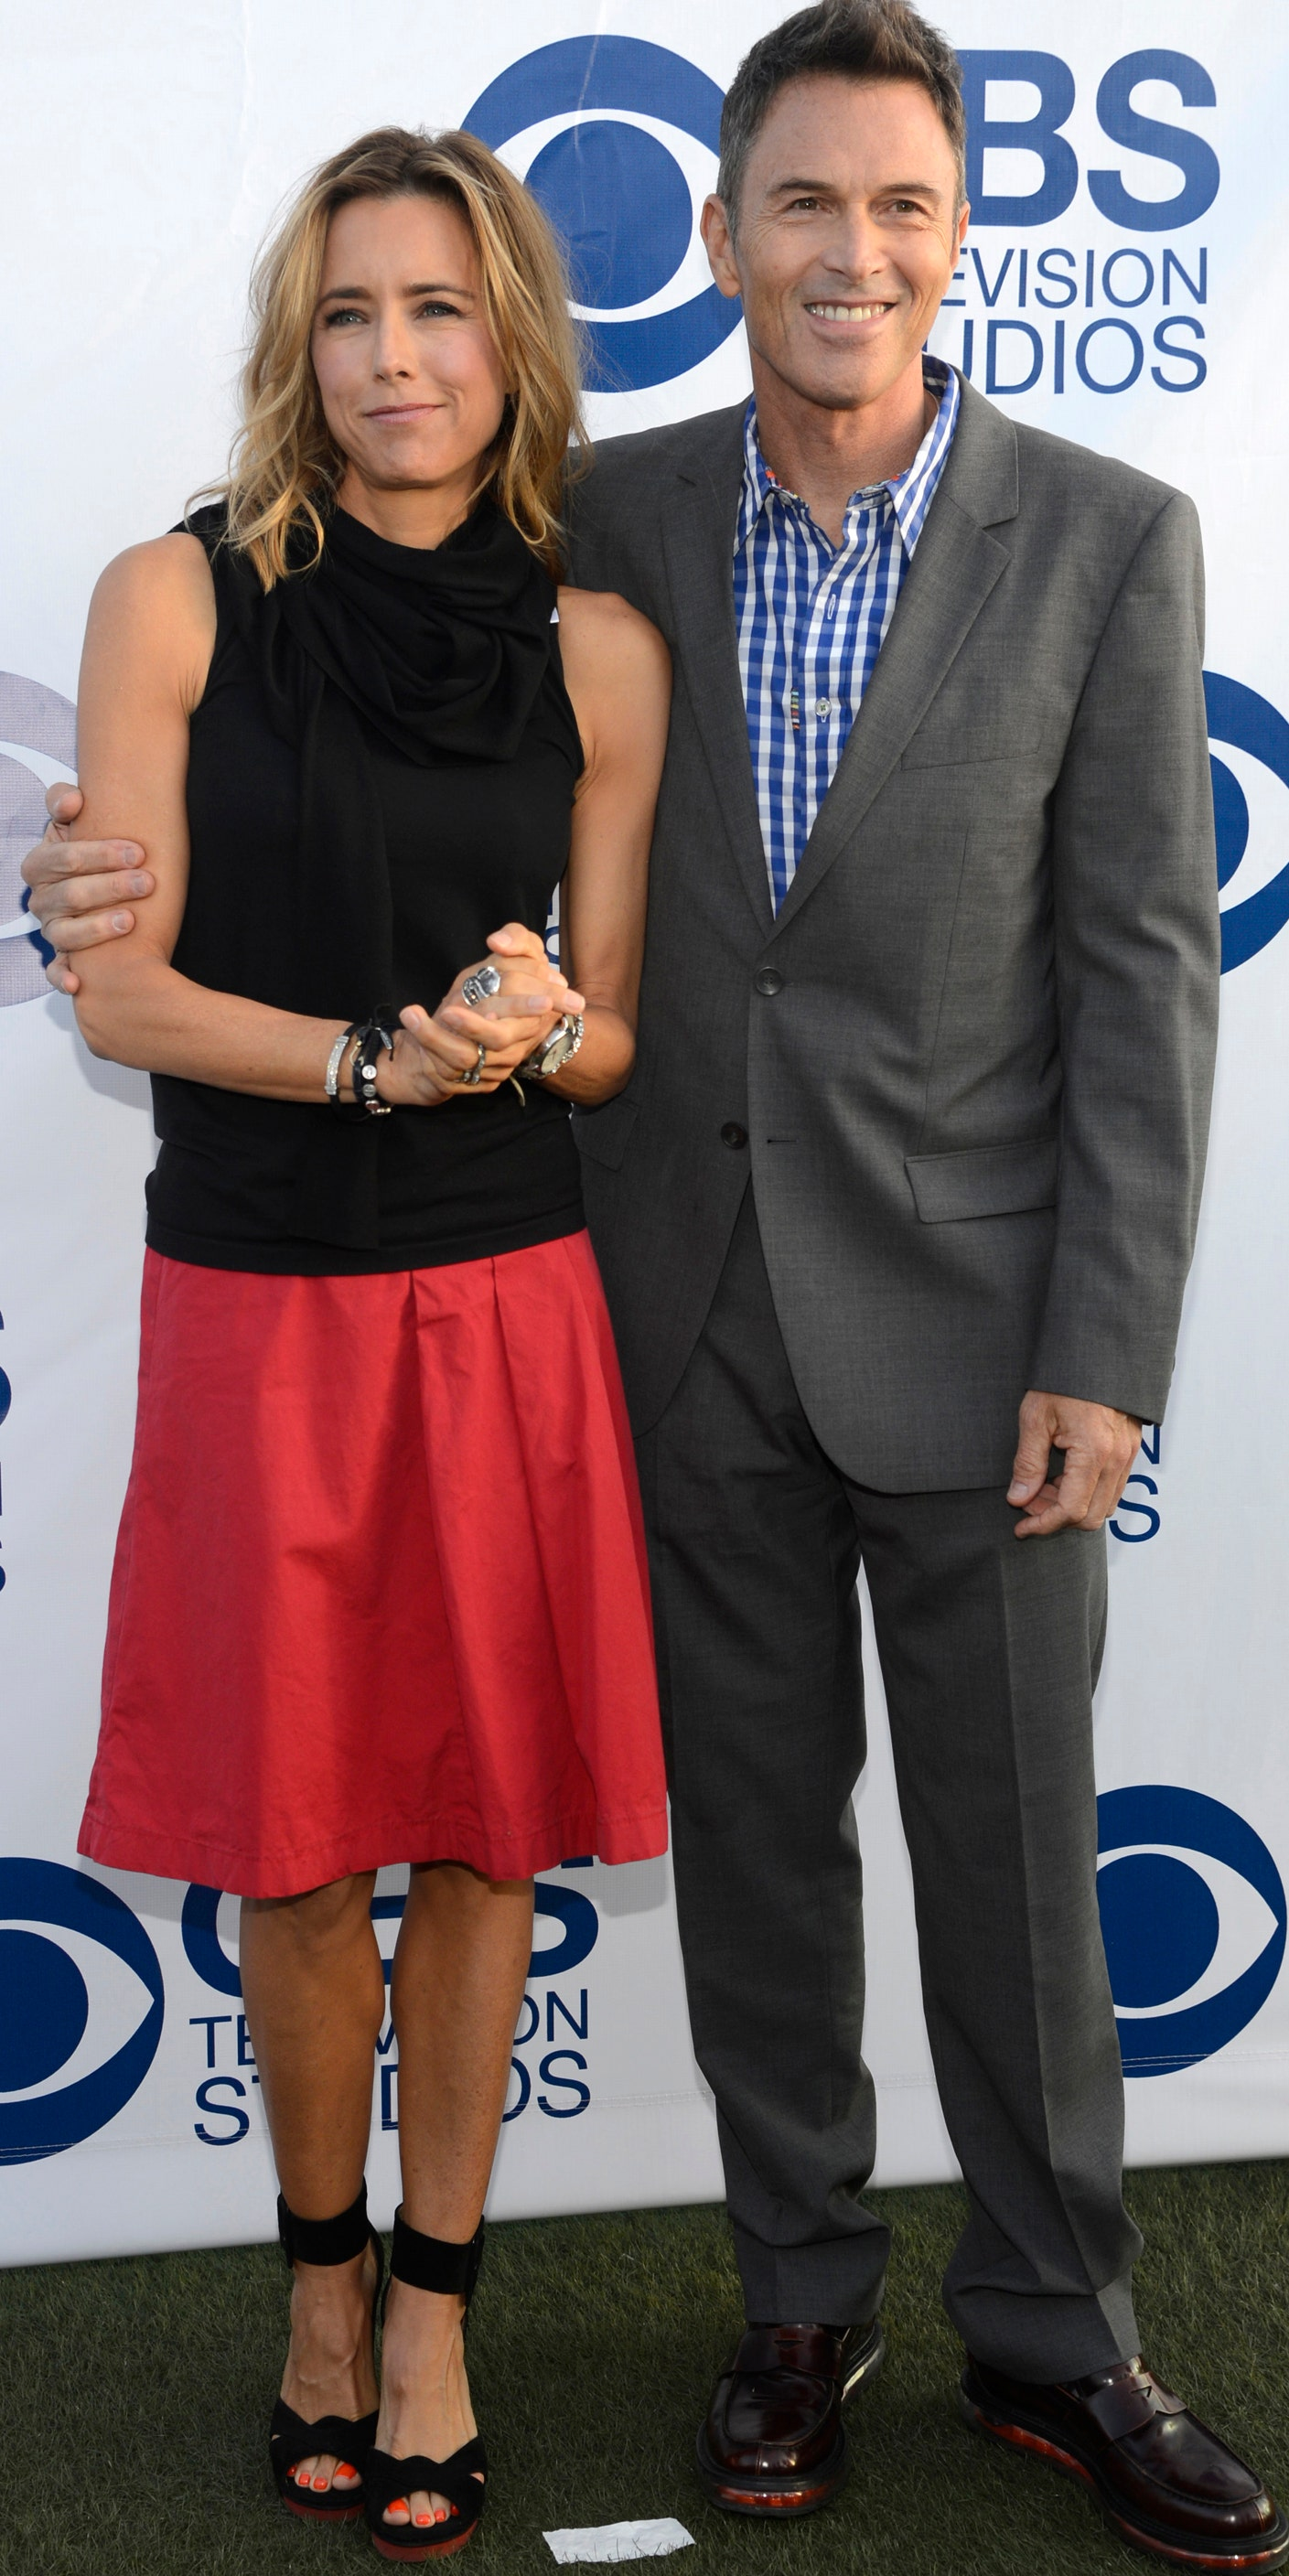 """tea leoni and tim daly dating Tea leoni, tim daly heating things up that seems to be the case with tea leoni and tim daly of """"madam secretary"""" on cbs leoni leoni and daly are dating."""